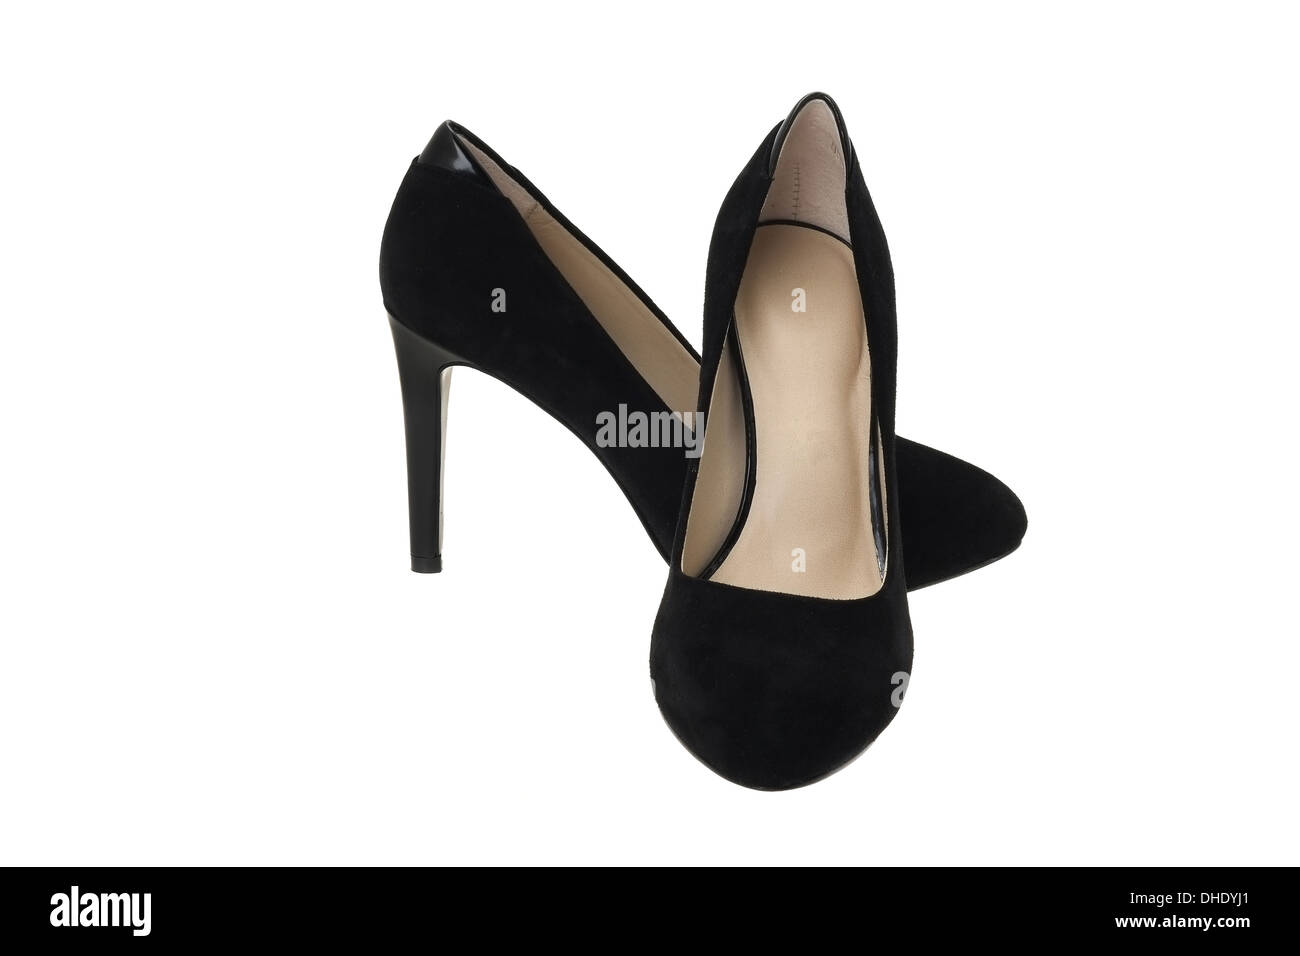 Ladies black high heel stiletto shoes - studio shot with a white background - Stock Image